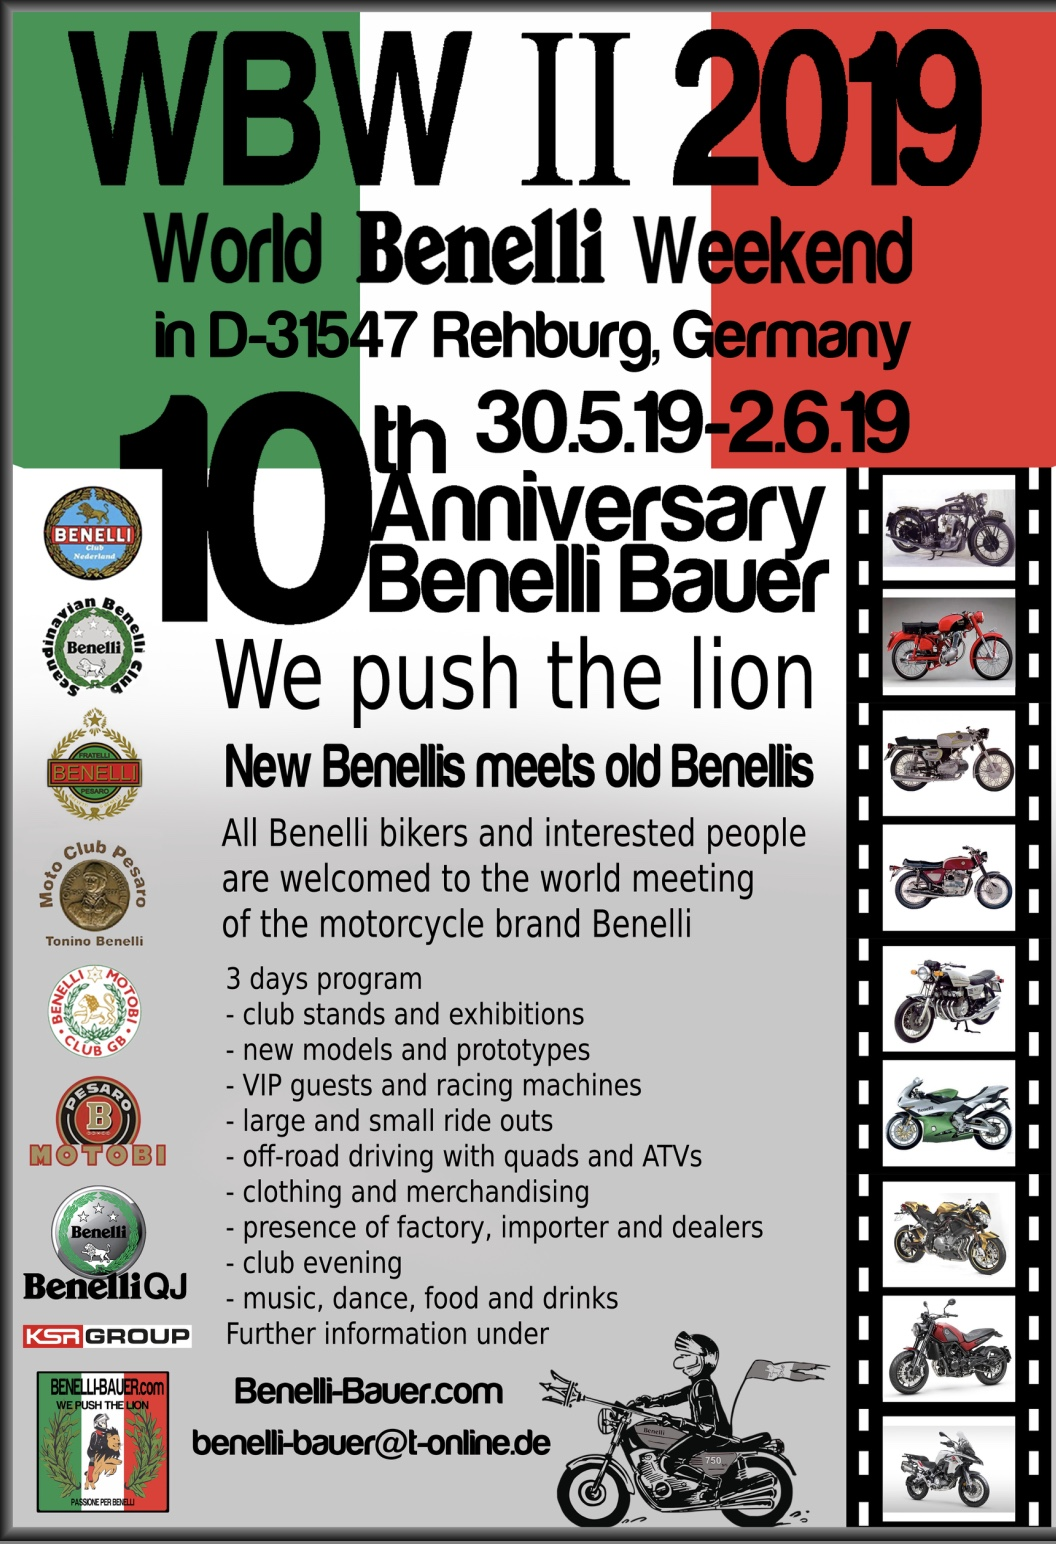 World Benelli Weekend 2019 Wbw10